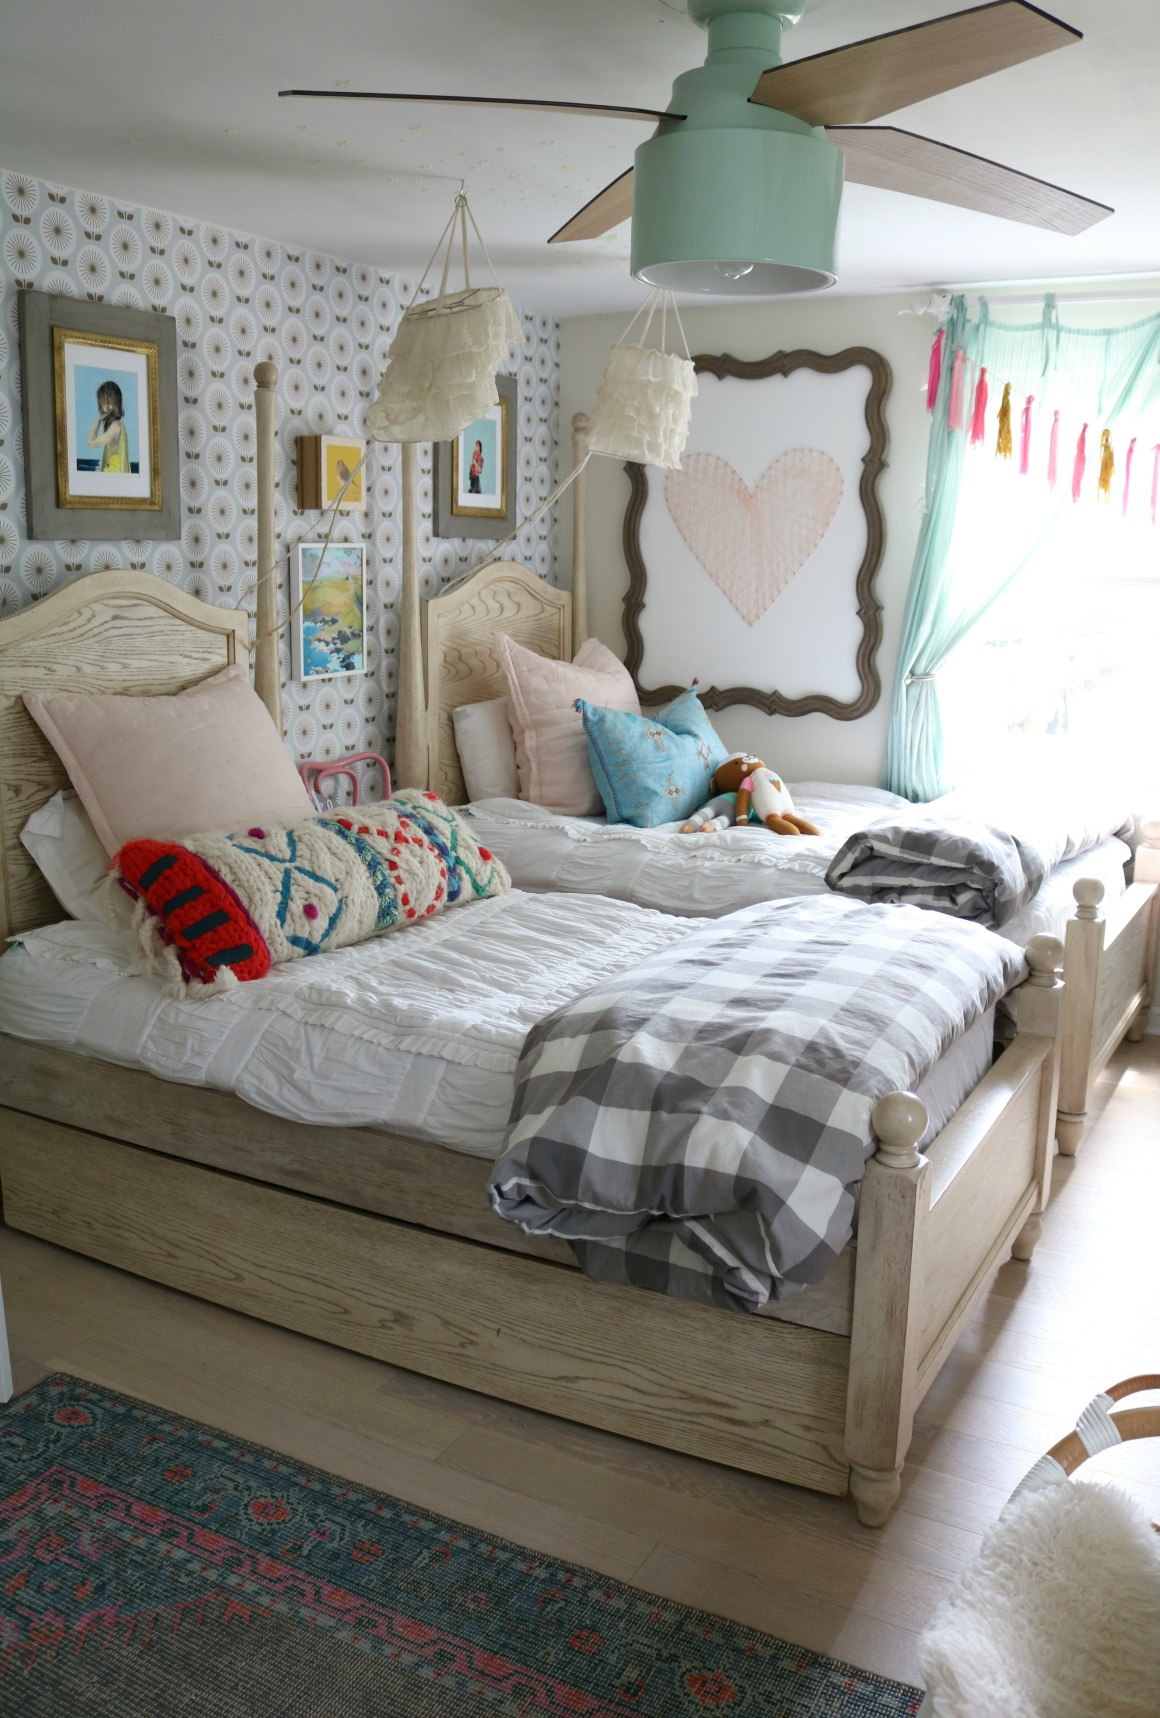 Small Space Living Series- Organizing Hacks in Our 1200 ... on Bedroom Ideas For Small Spaces  id=23622